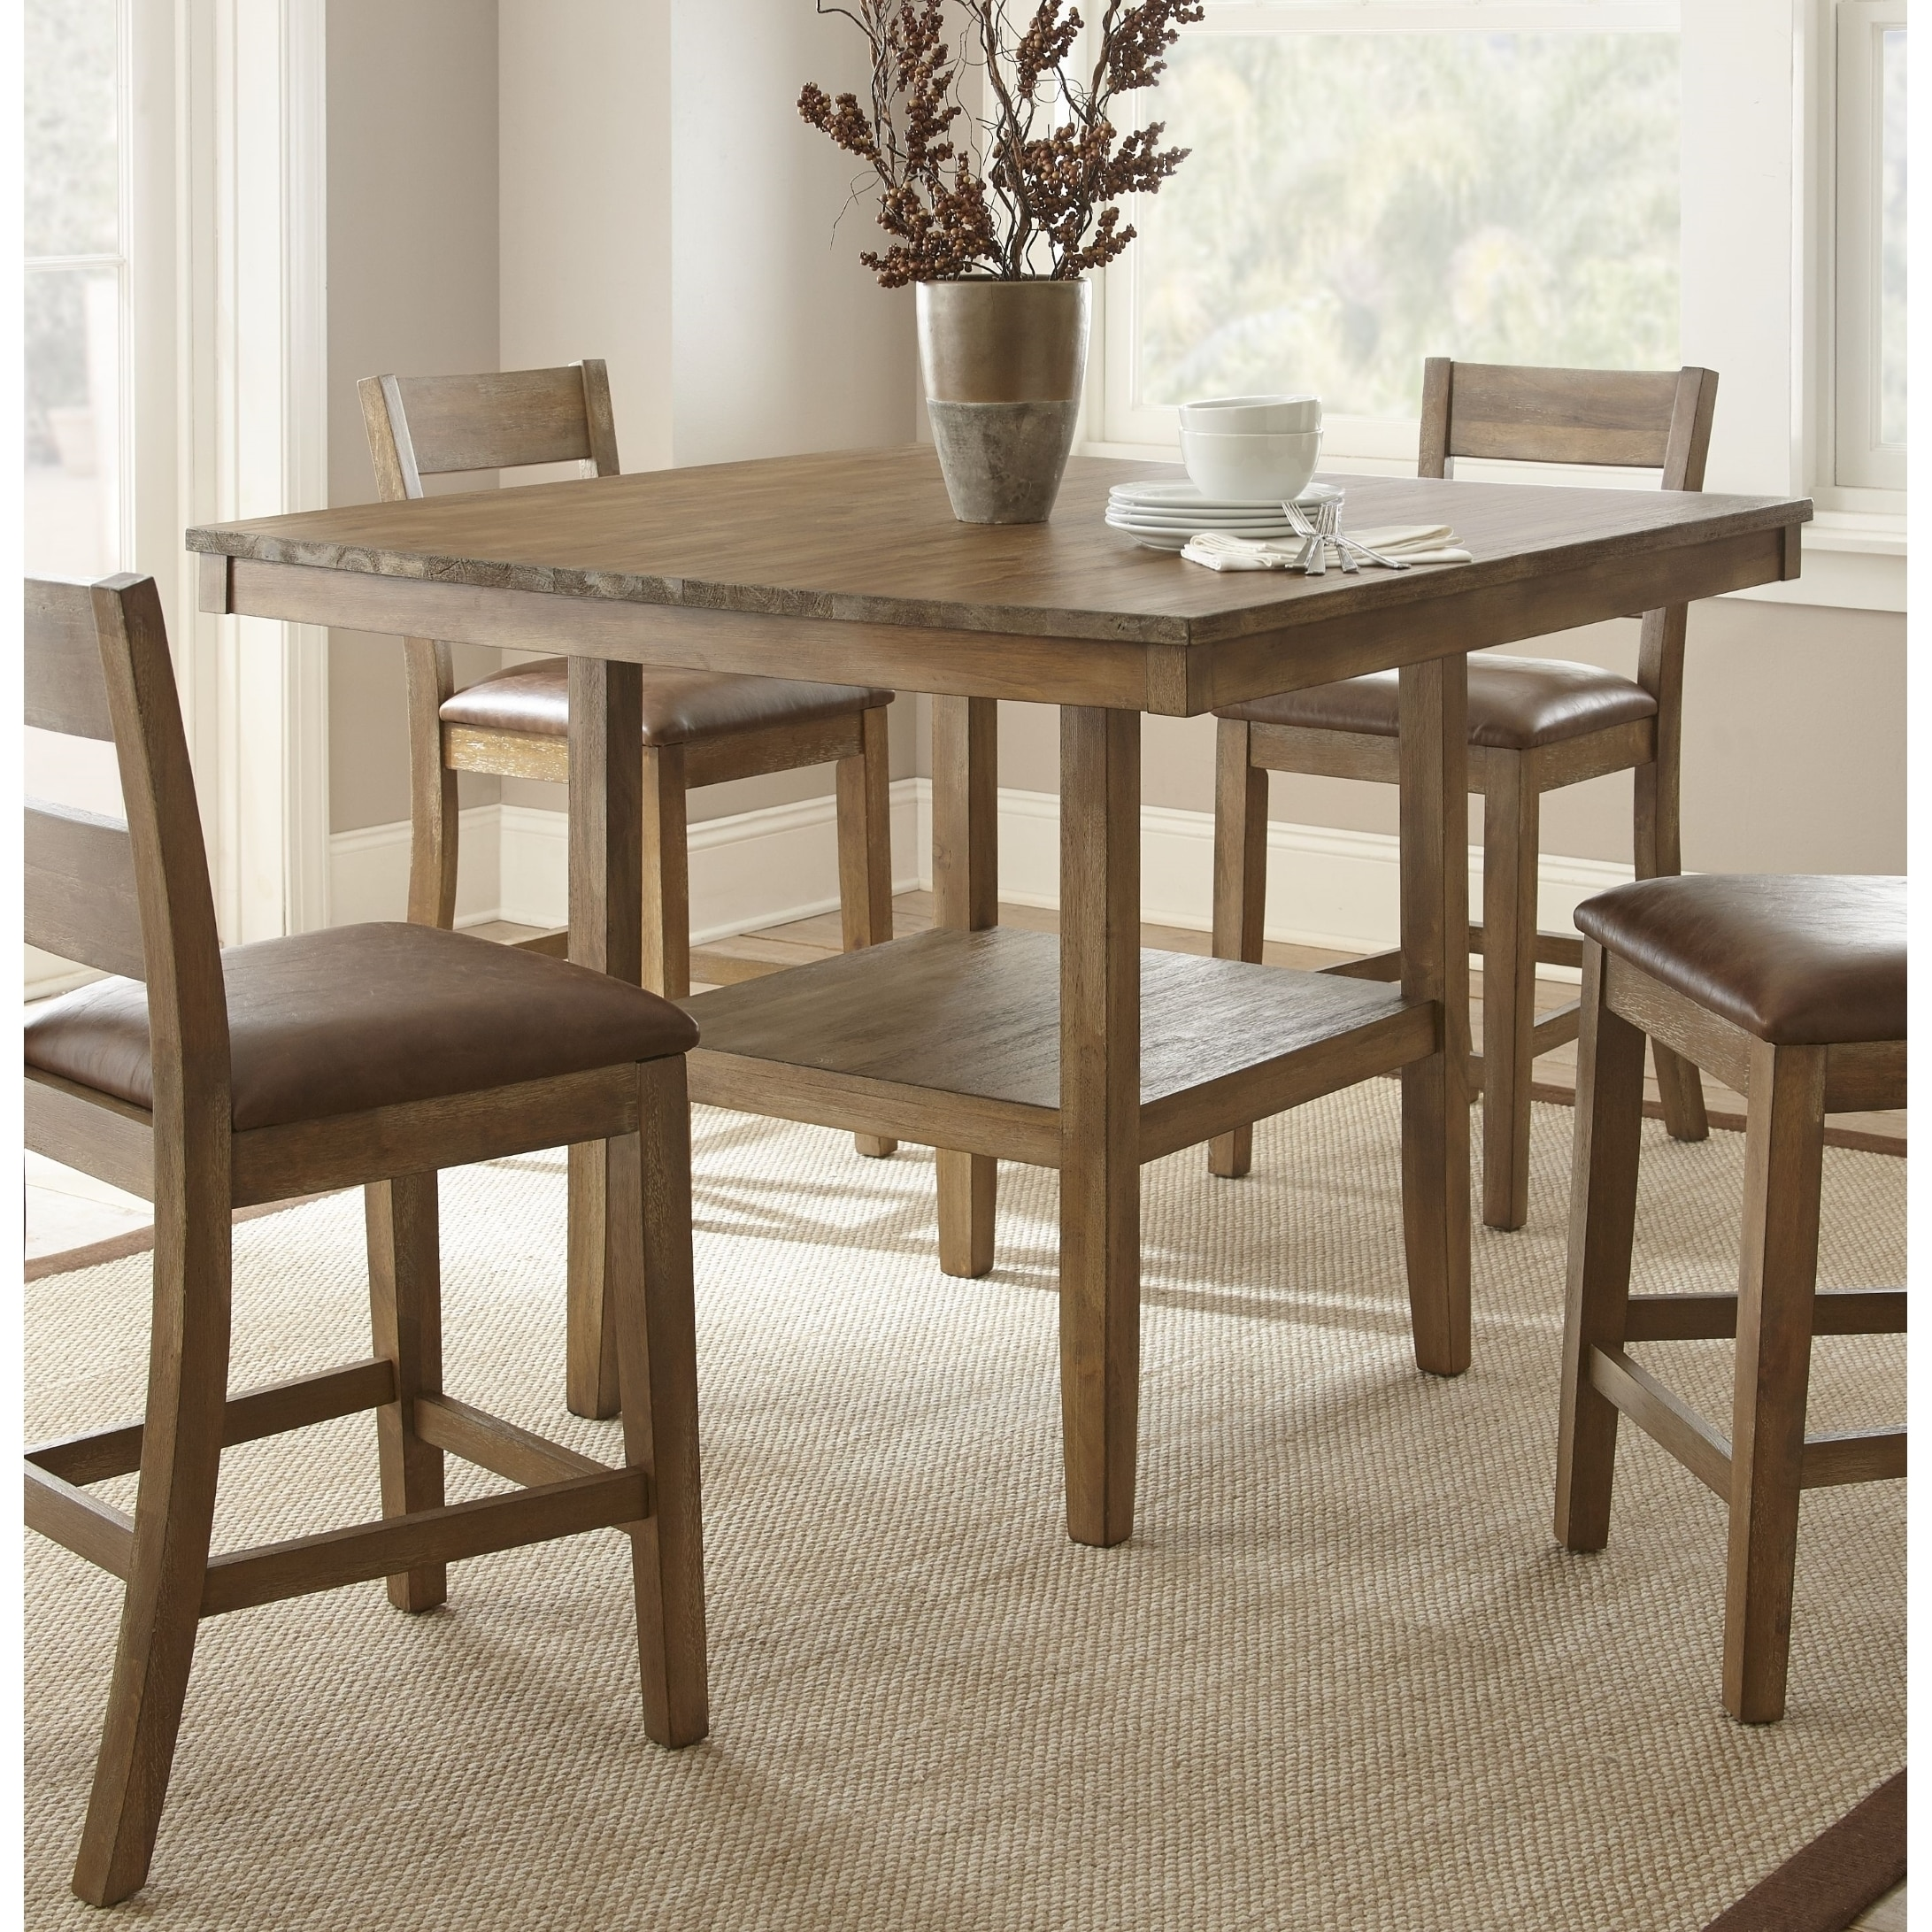 Chaffee 48 Inch Square Counter Height Dining Table By Greyson Living Free Shipping Today 17182117